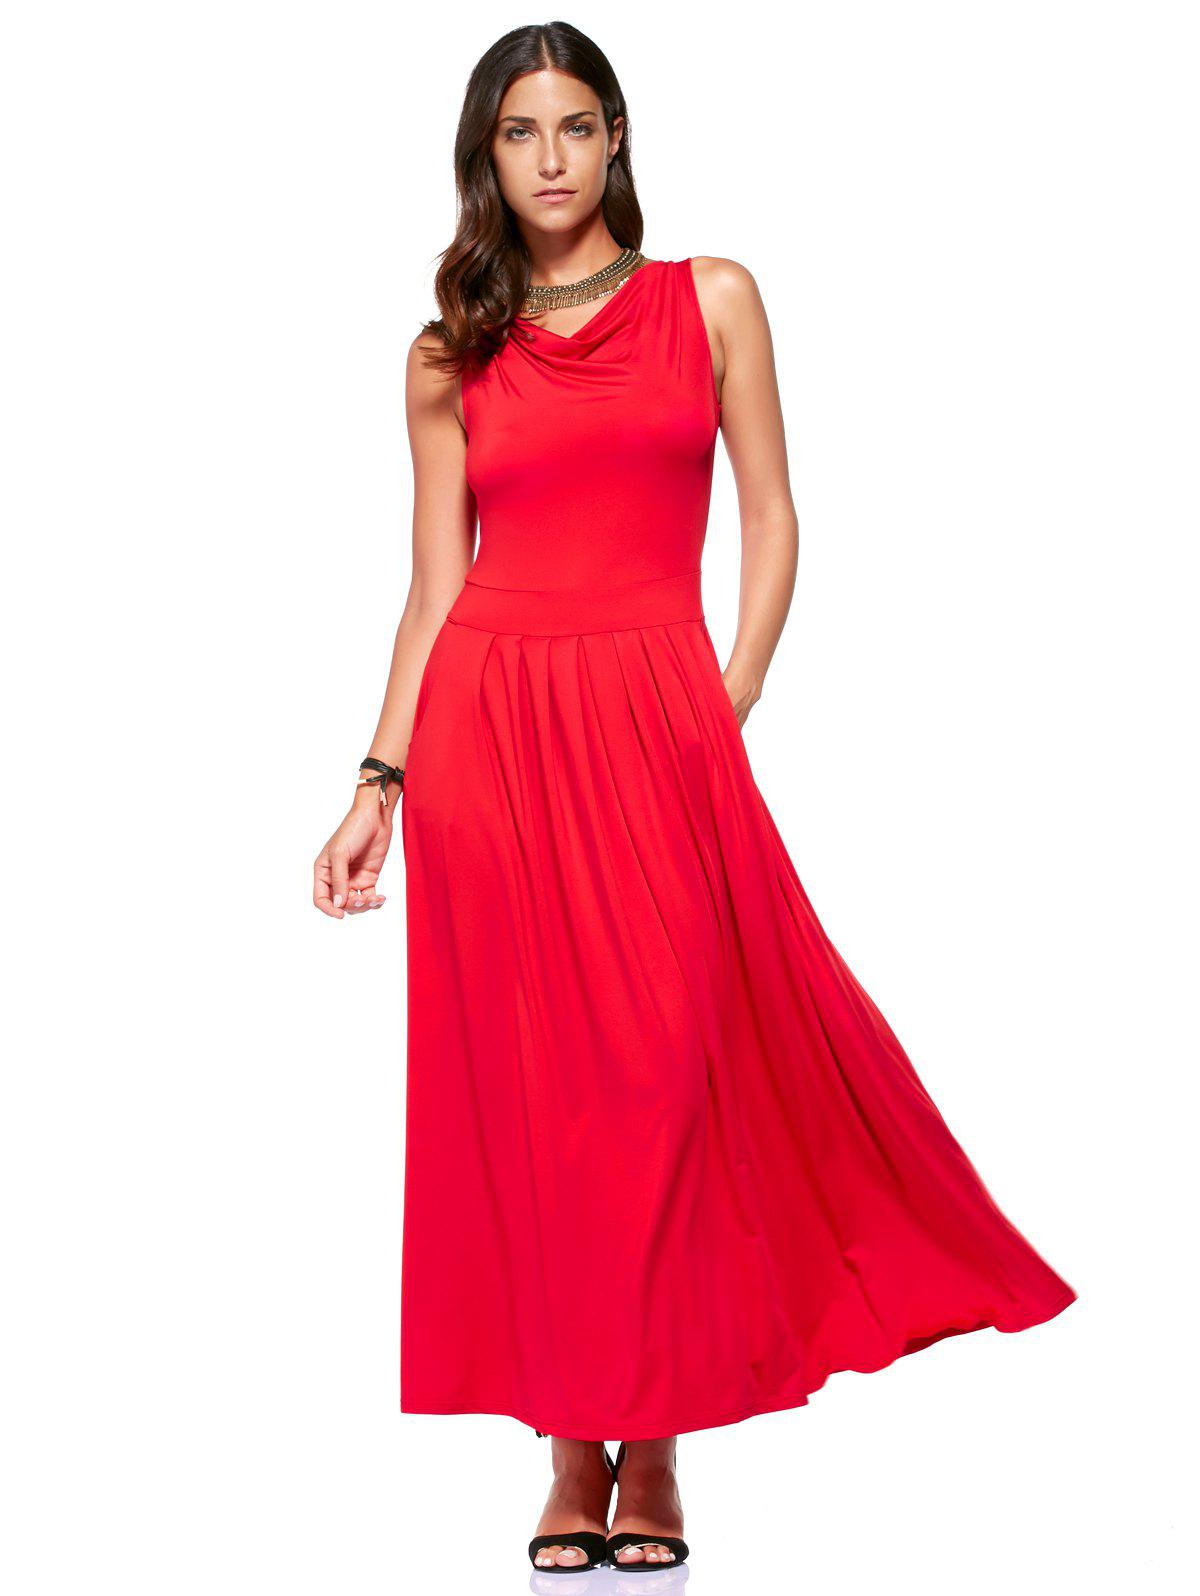 Stylish Women's Cowl Neck Sleeveless Backless Solid Color Dress